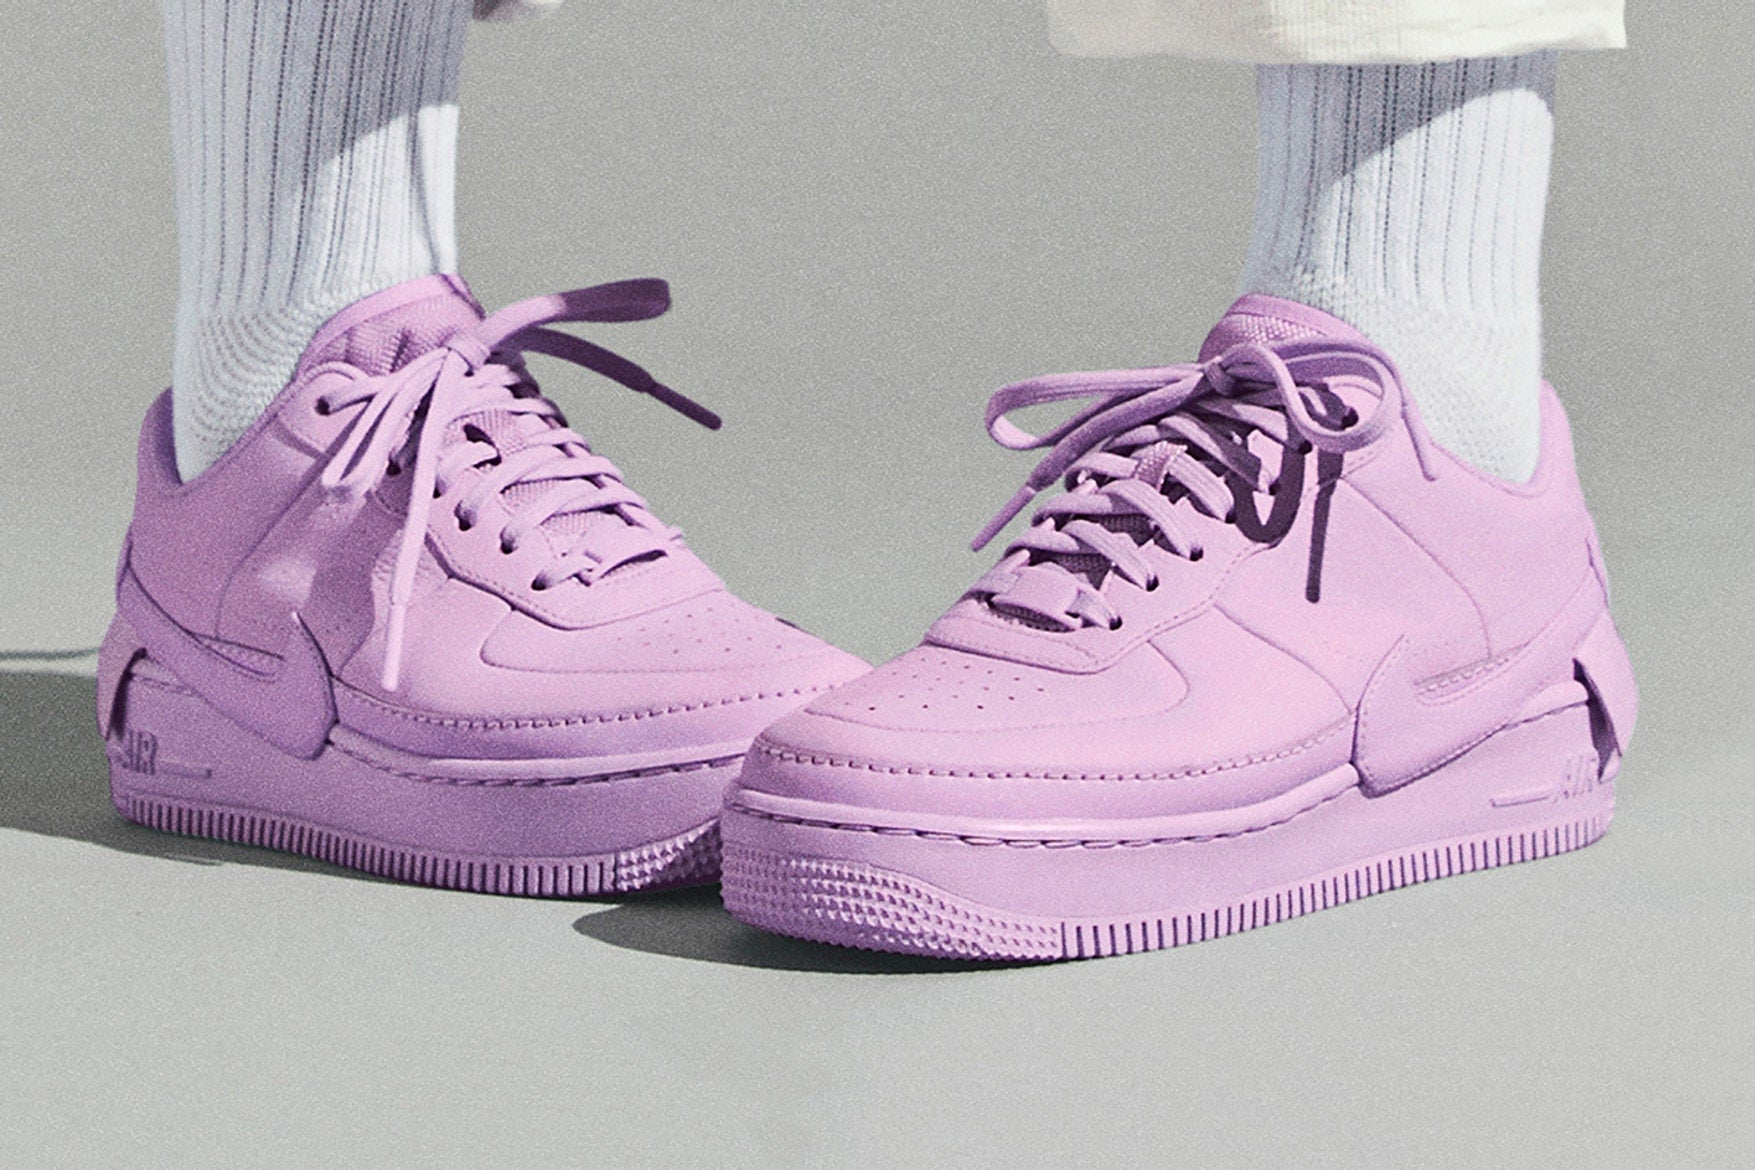 6abc194b9 ... hot the nike air force 1 low jester xx in violet mist available at  galeries womens